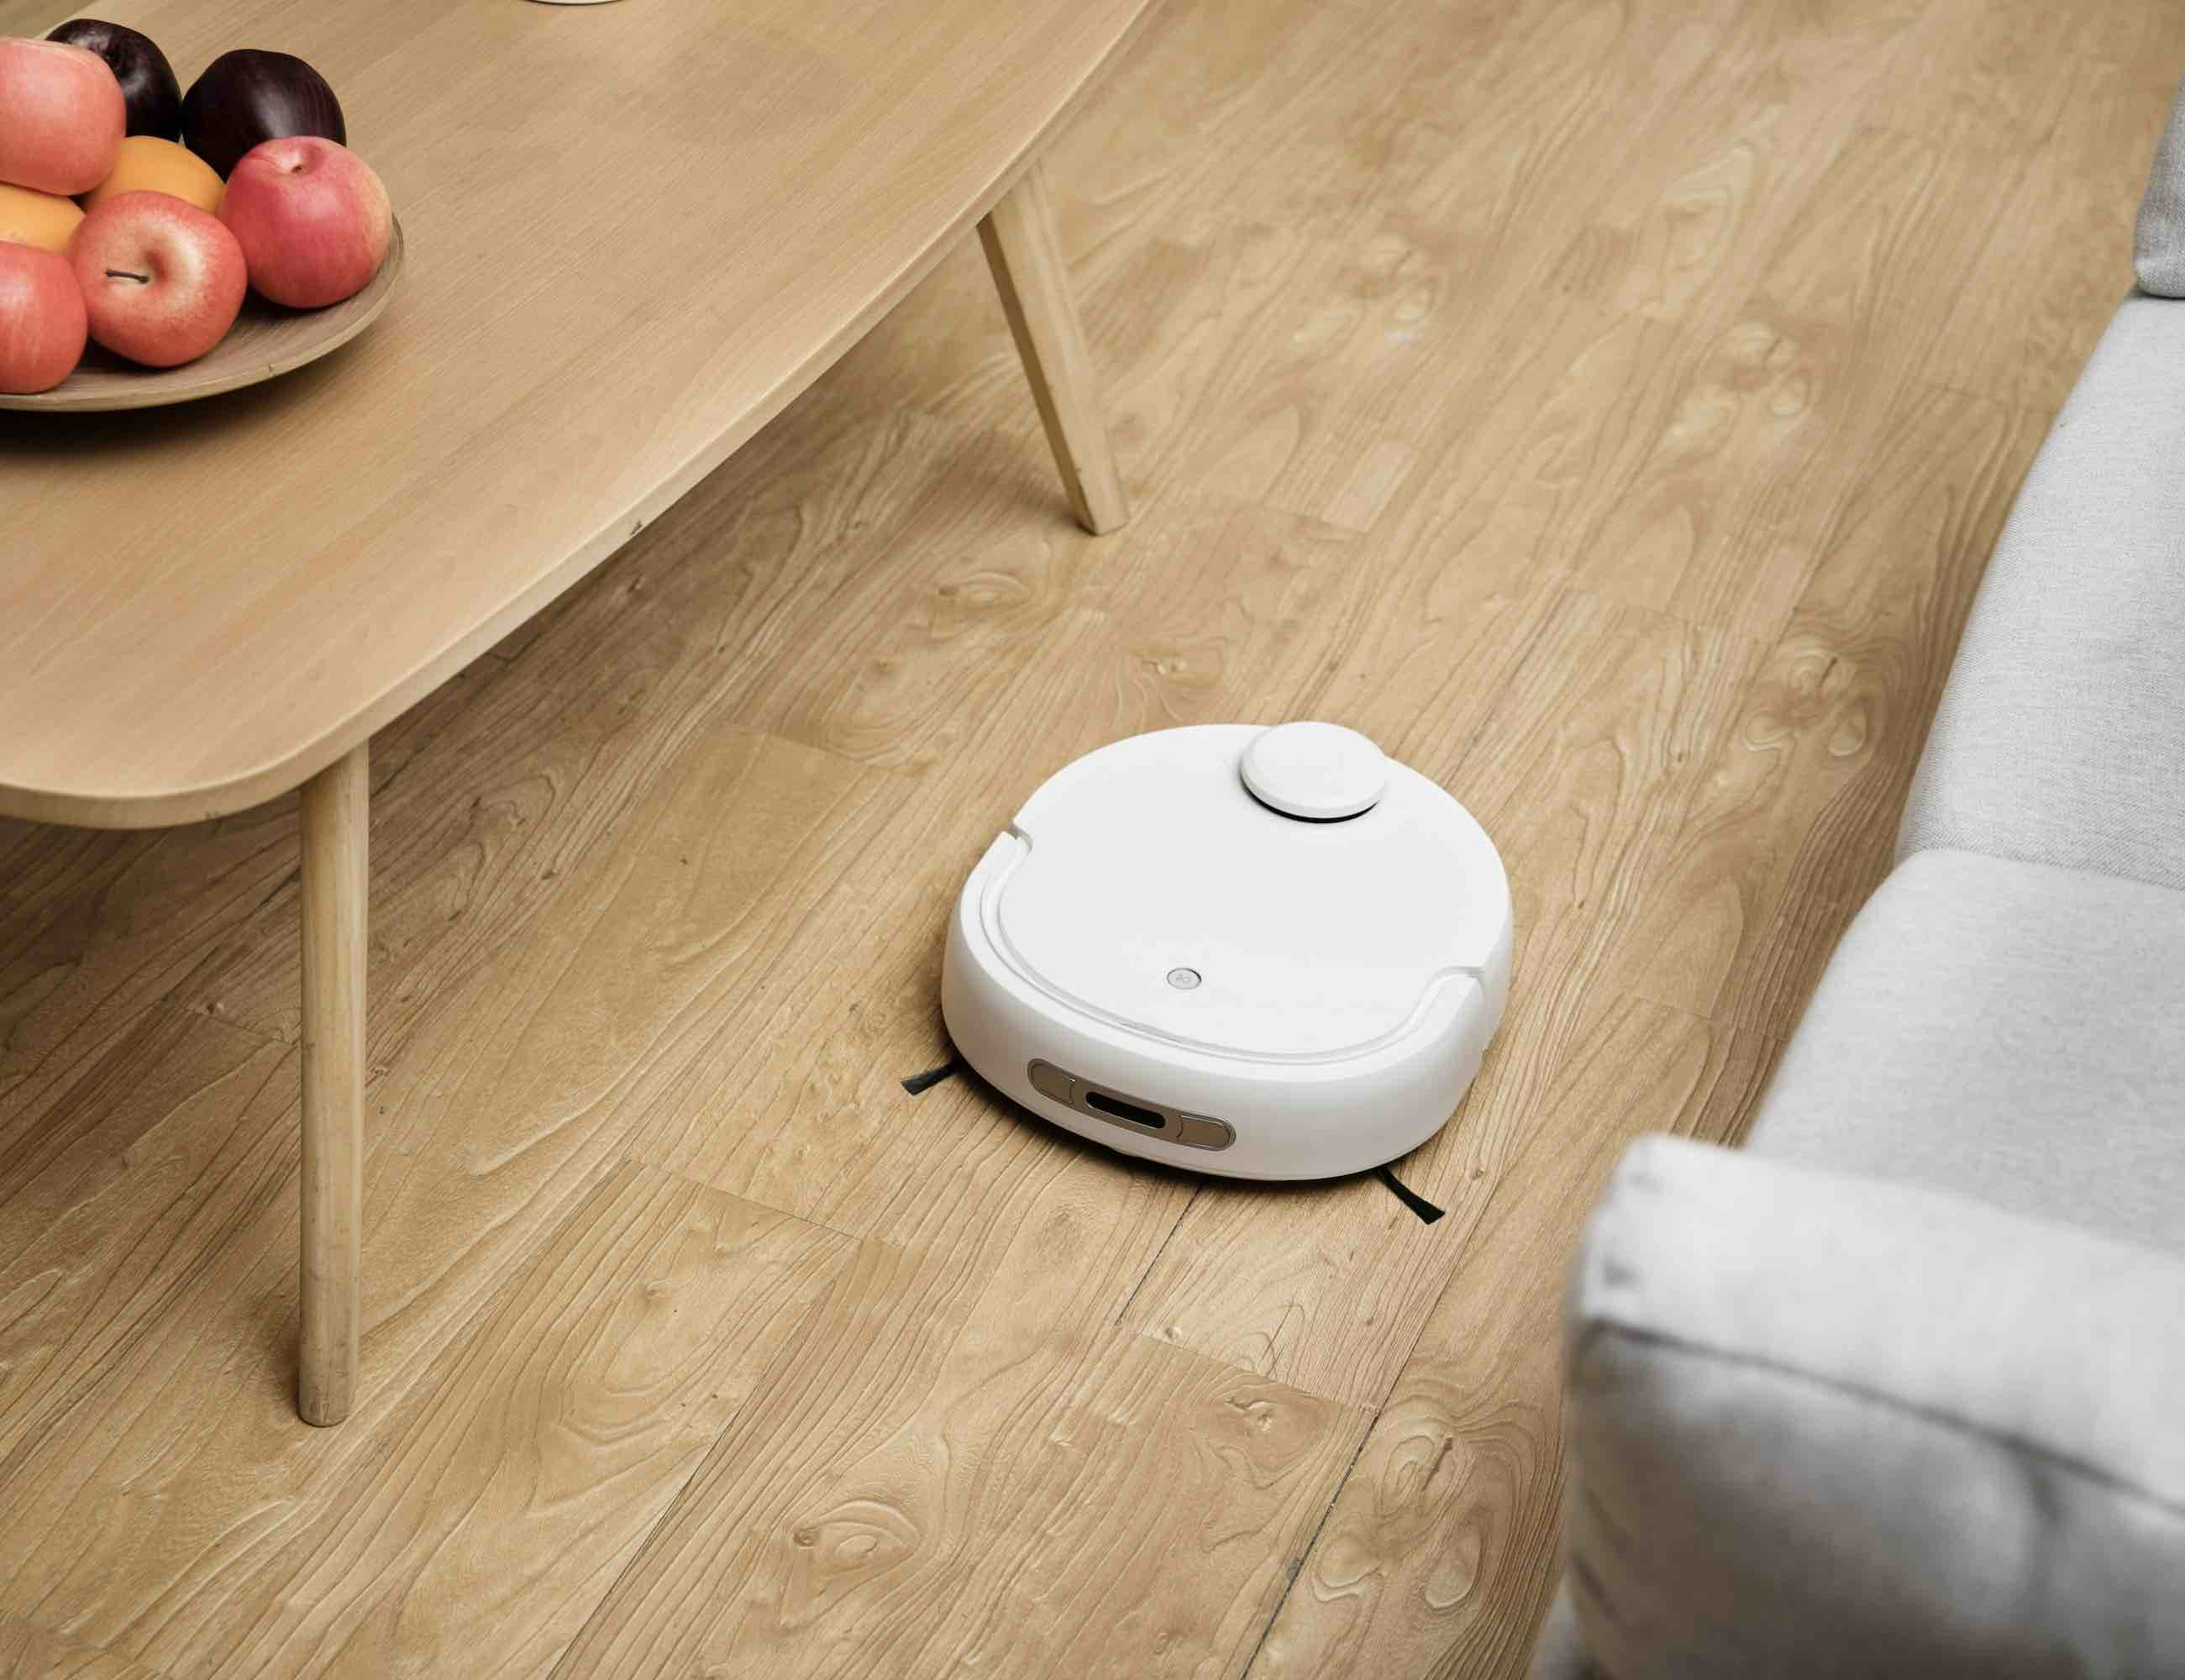 Narwal Self-Cleaning Robot Mop & Vacuum does all the hard work for you